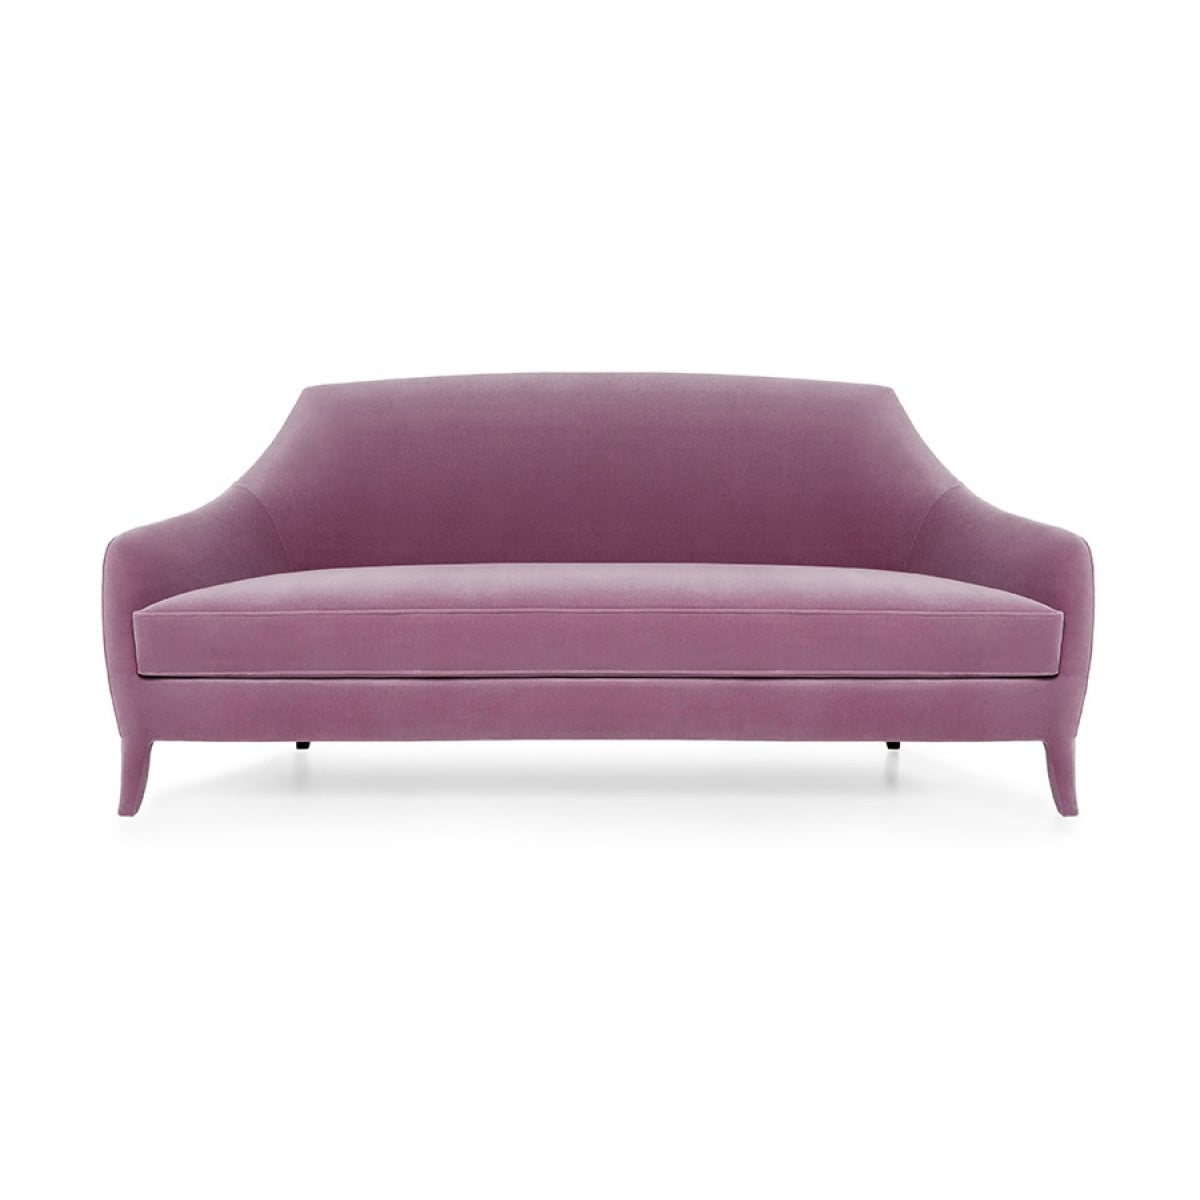 Terrific Munna Furniture Designer Sofa Purple Sofa Margaret Ibusinesslaw Wood Chair Design Ideas Ibusinesslaworg